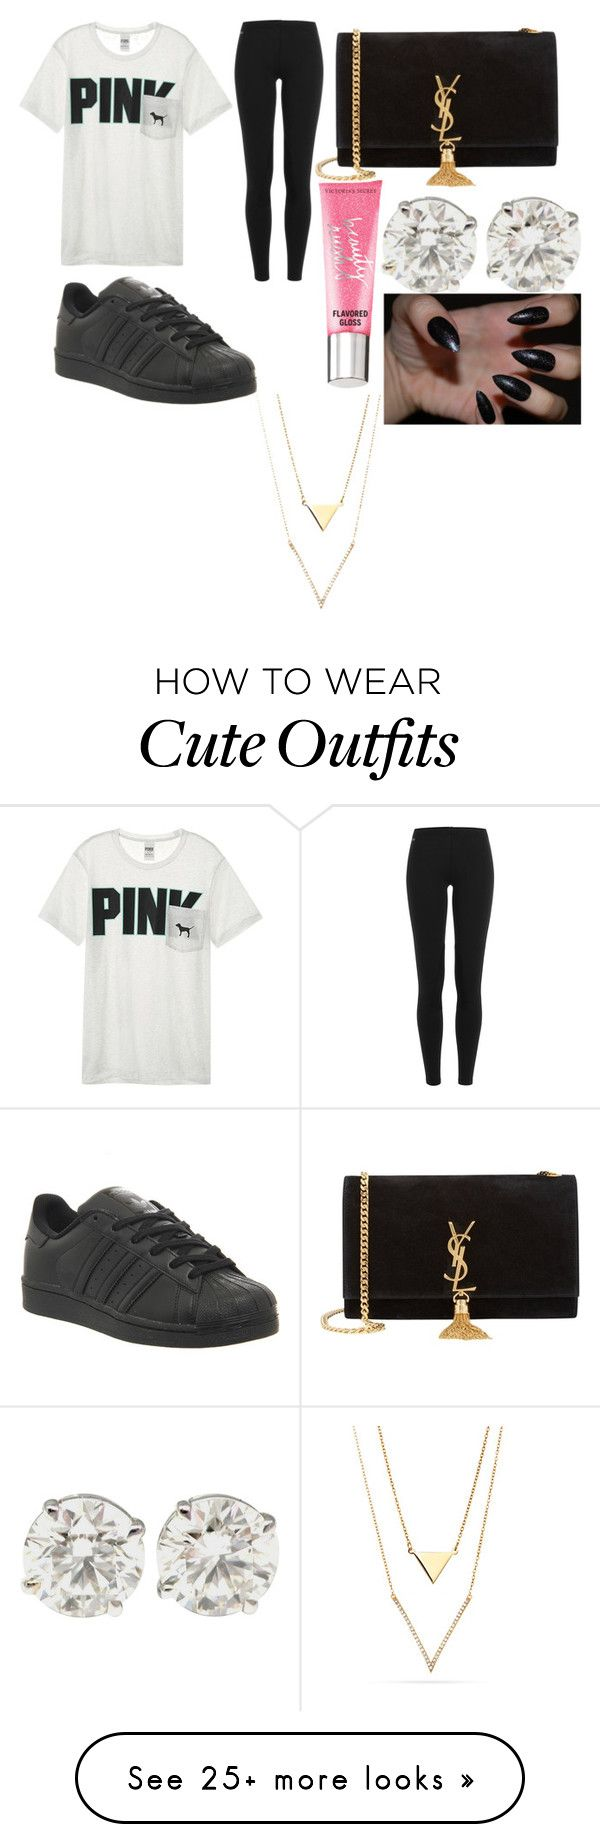 """back to school outfit"" by dakitasharp on Polyvore featuring Victoria's Secret, Polo Ralph Lauren, Yves Saint Laurent, adidas and Beauty Rush"